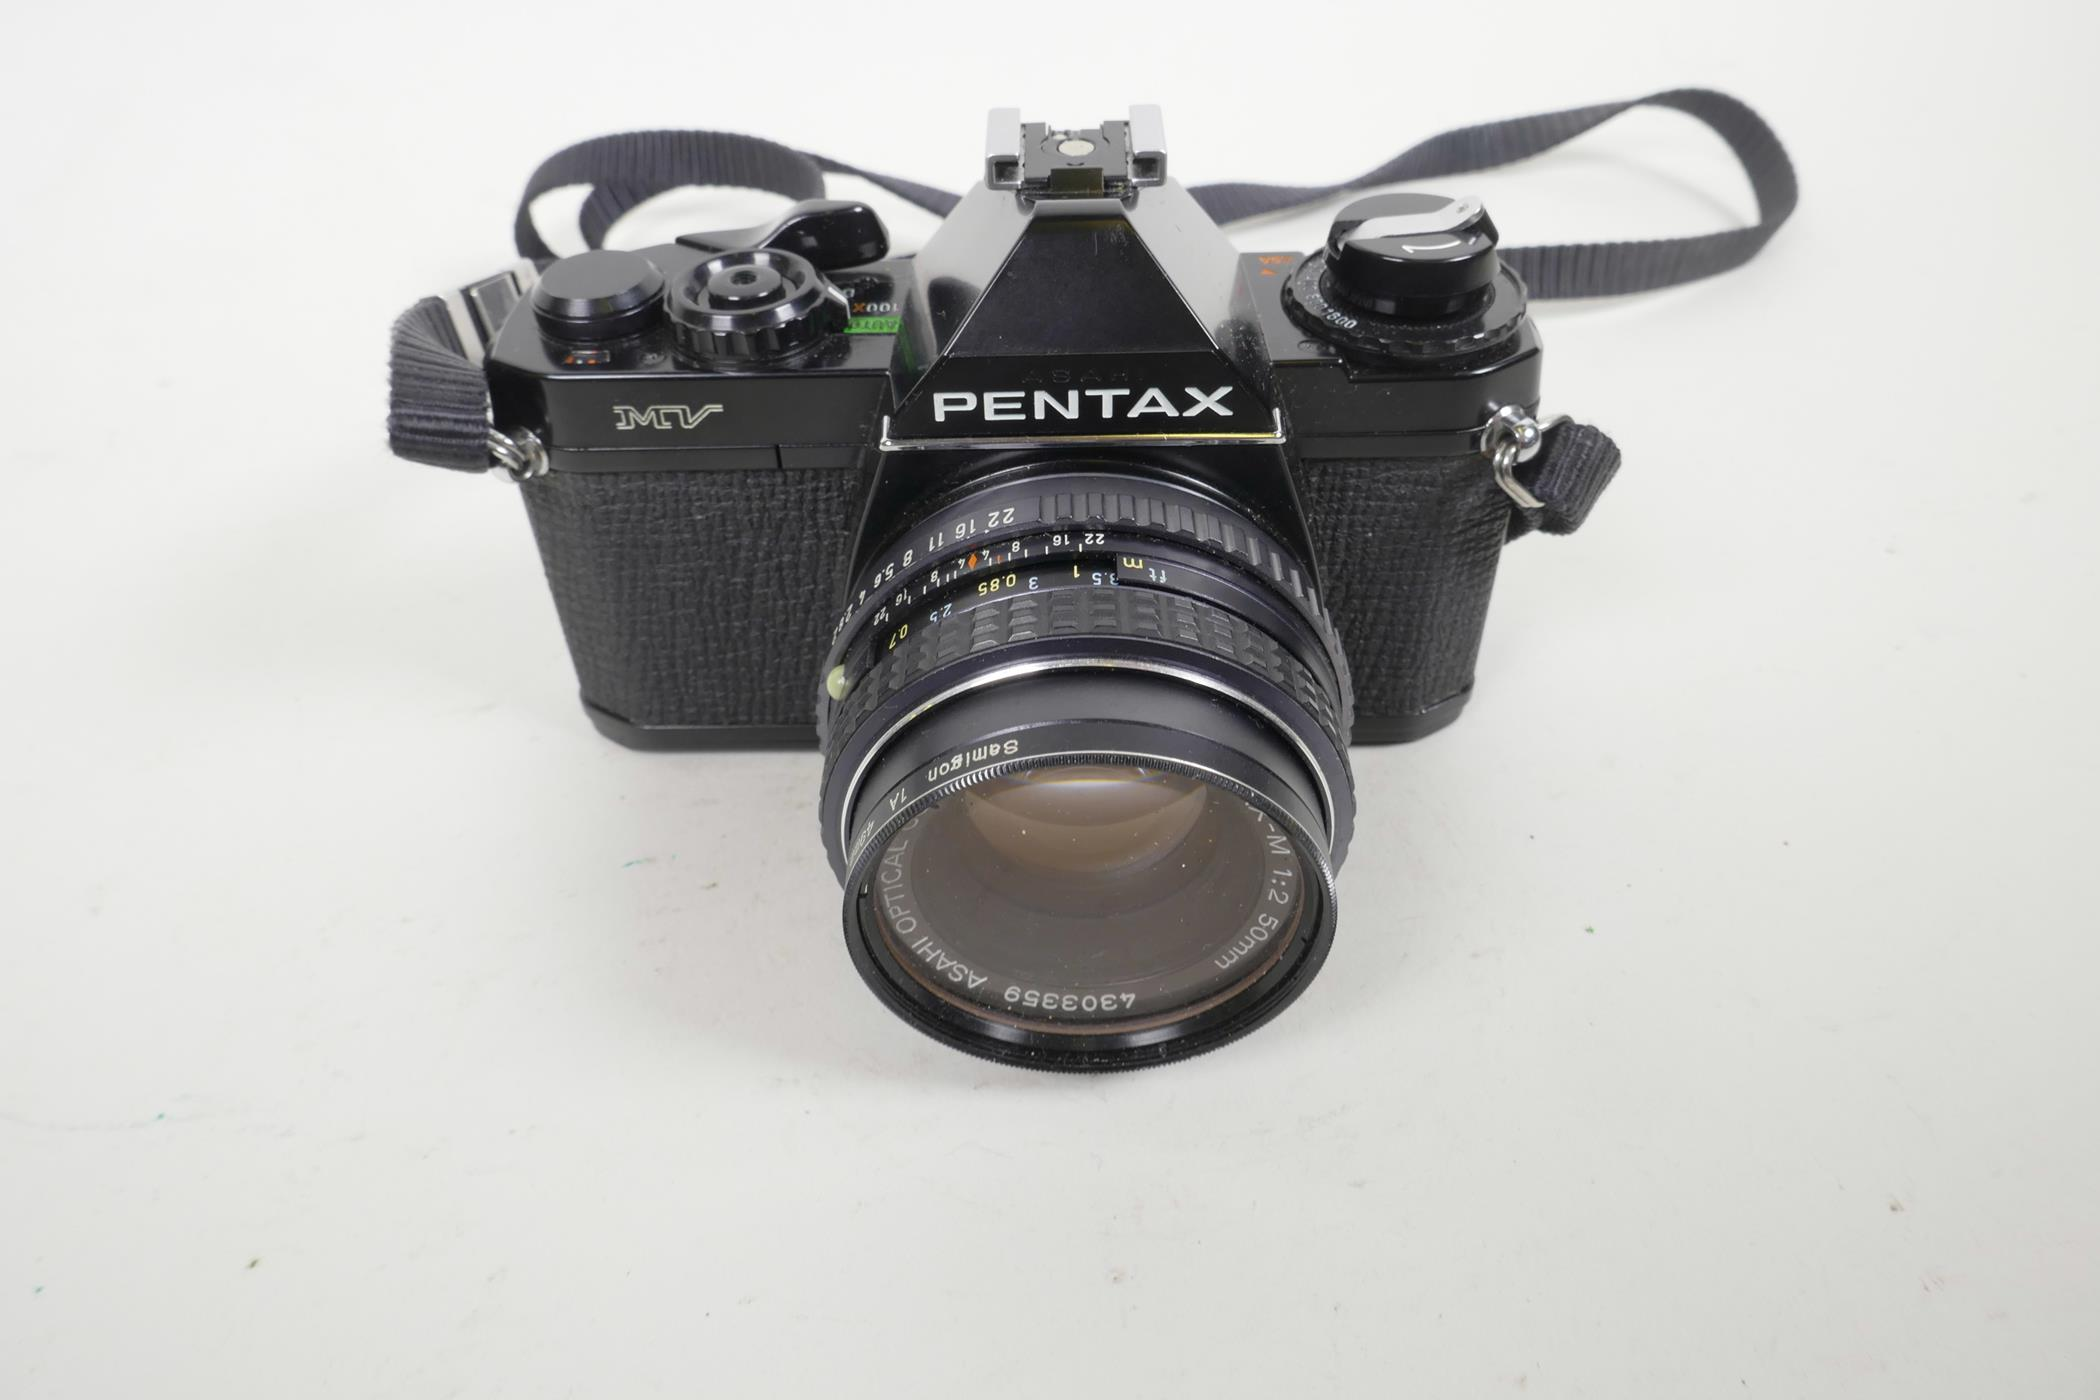 Lot 56 - A Pentax MV single lens reflex 35mm camera, together with a Pentax M 1:250 mm lens